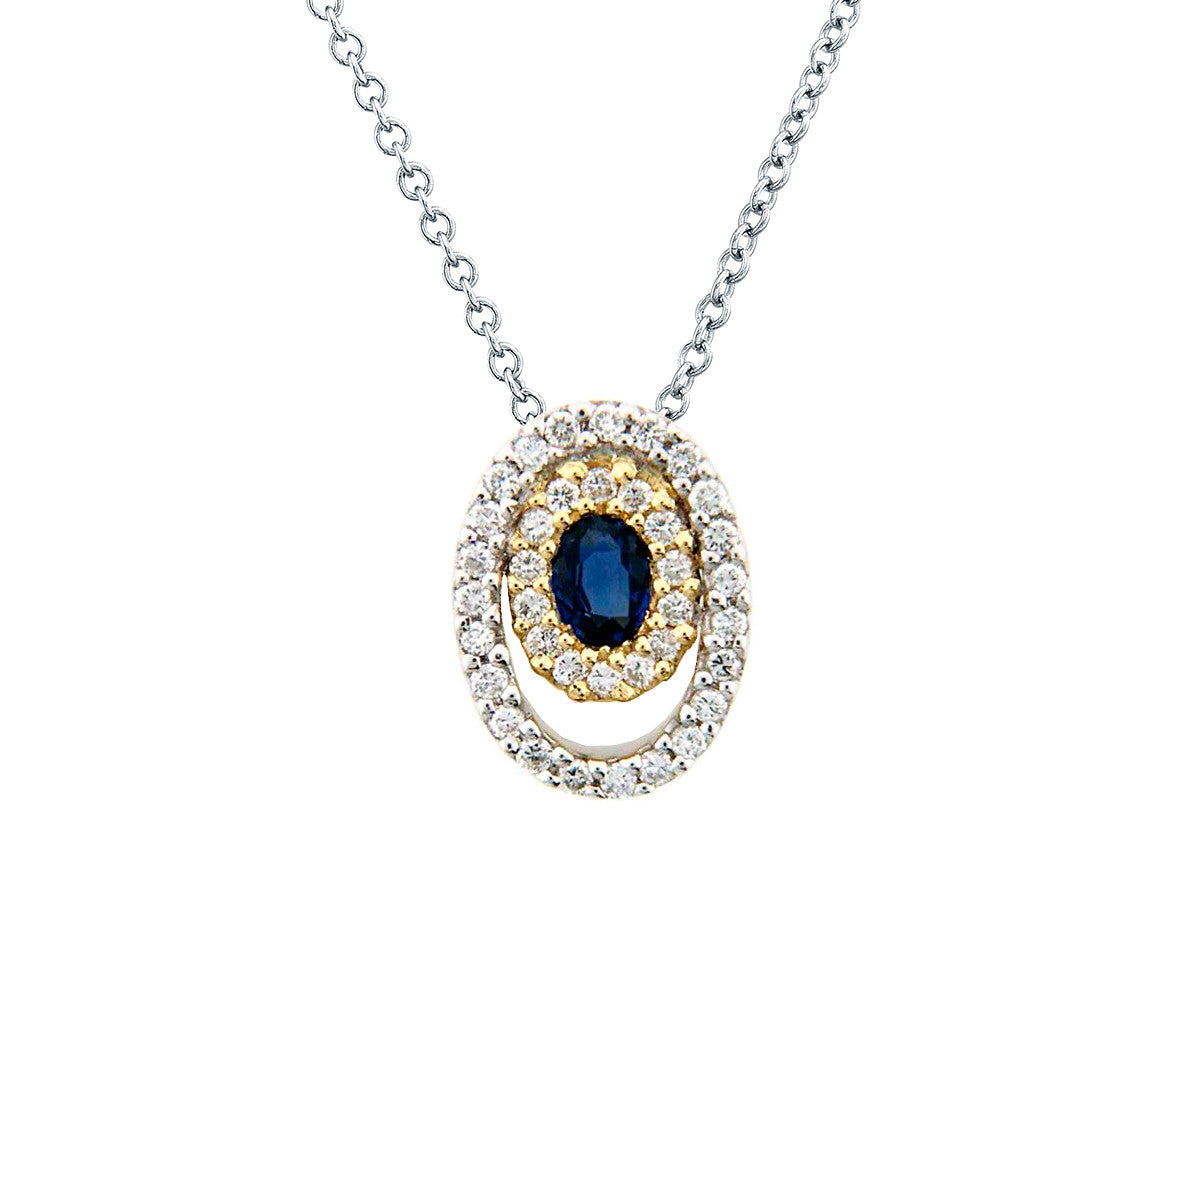 sappbire necklace index yellow white compass rose gold sapphire diamond